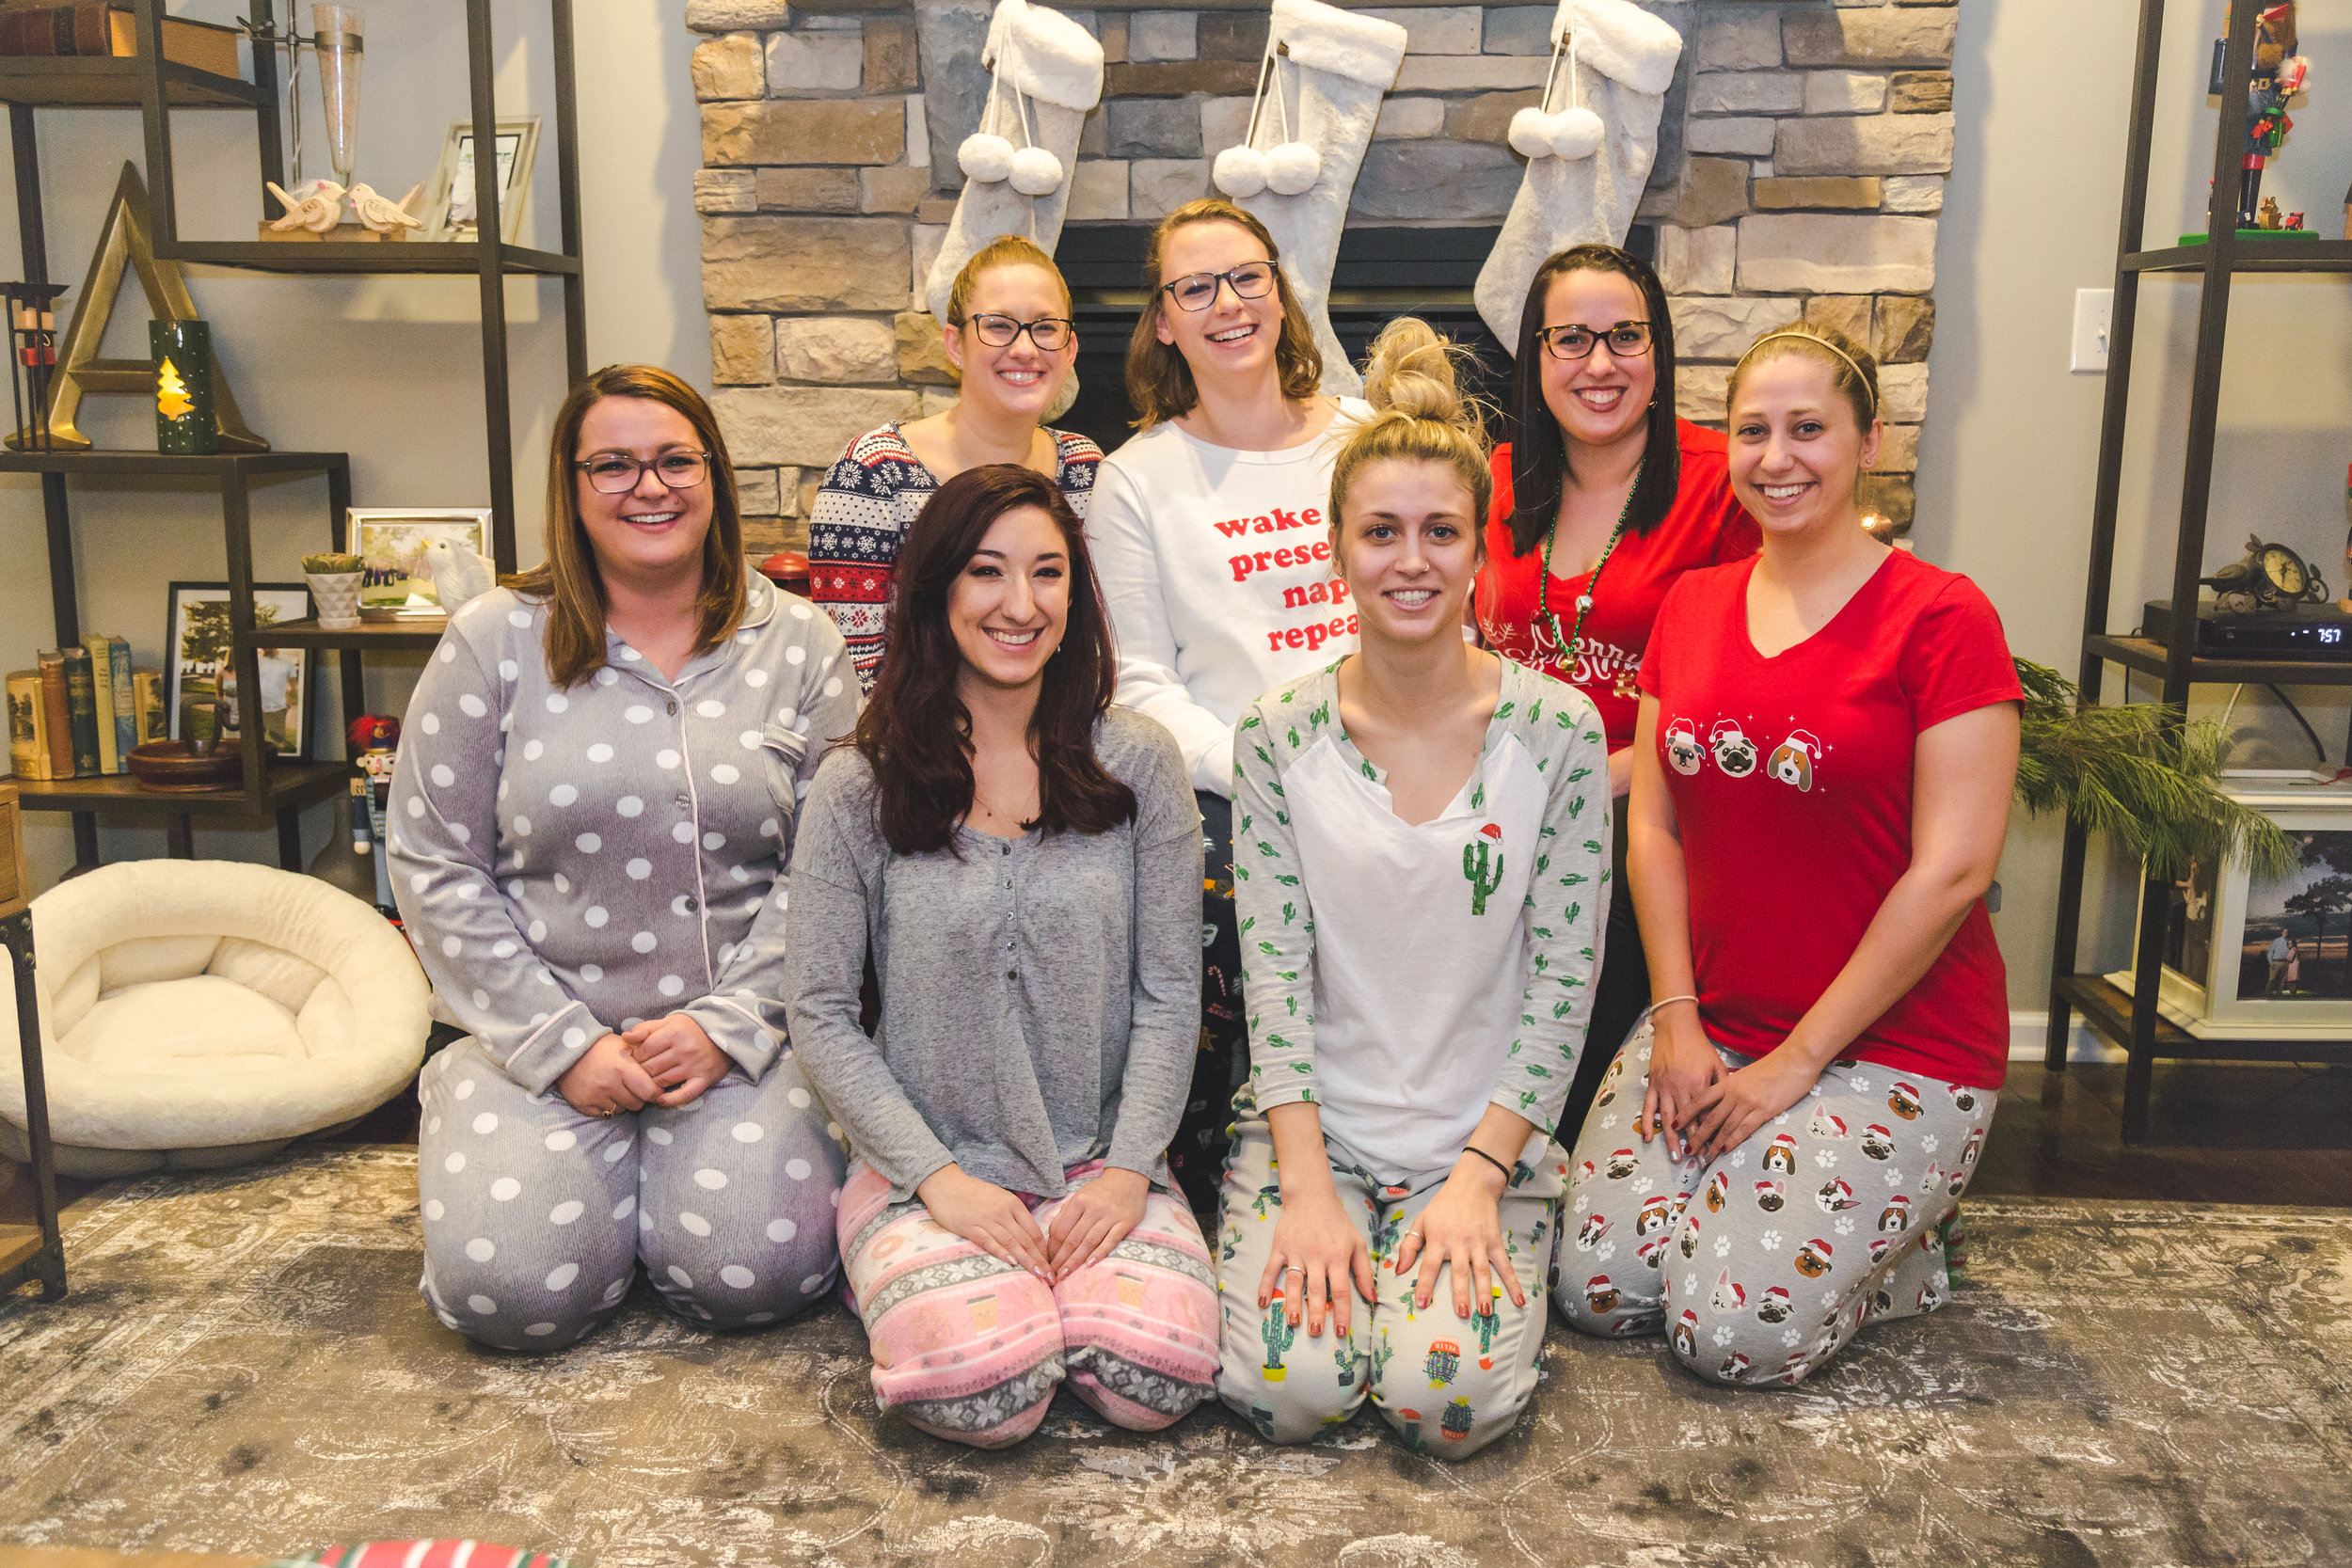 Staff Christmas Pajama Party, December 2018. From Left to Right: Top Row- Sarah, Emily M., and Jenn. Bottom Row- Courtney, Callie, Emily B., and Deanna.